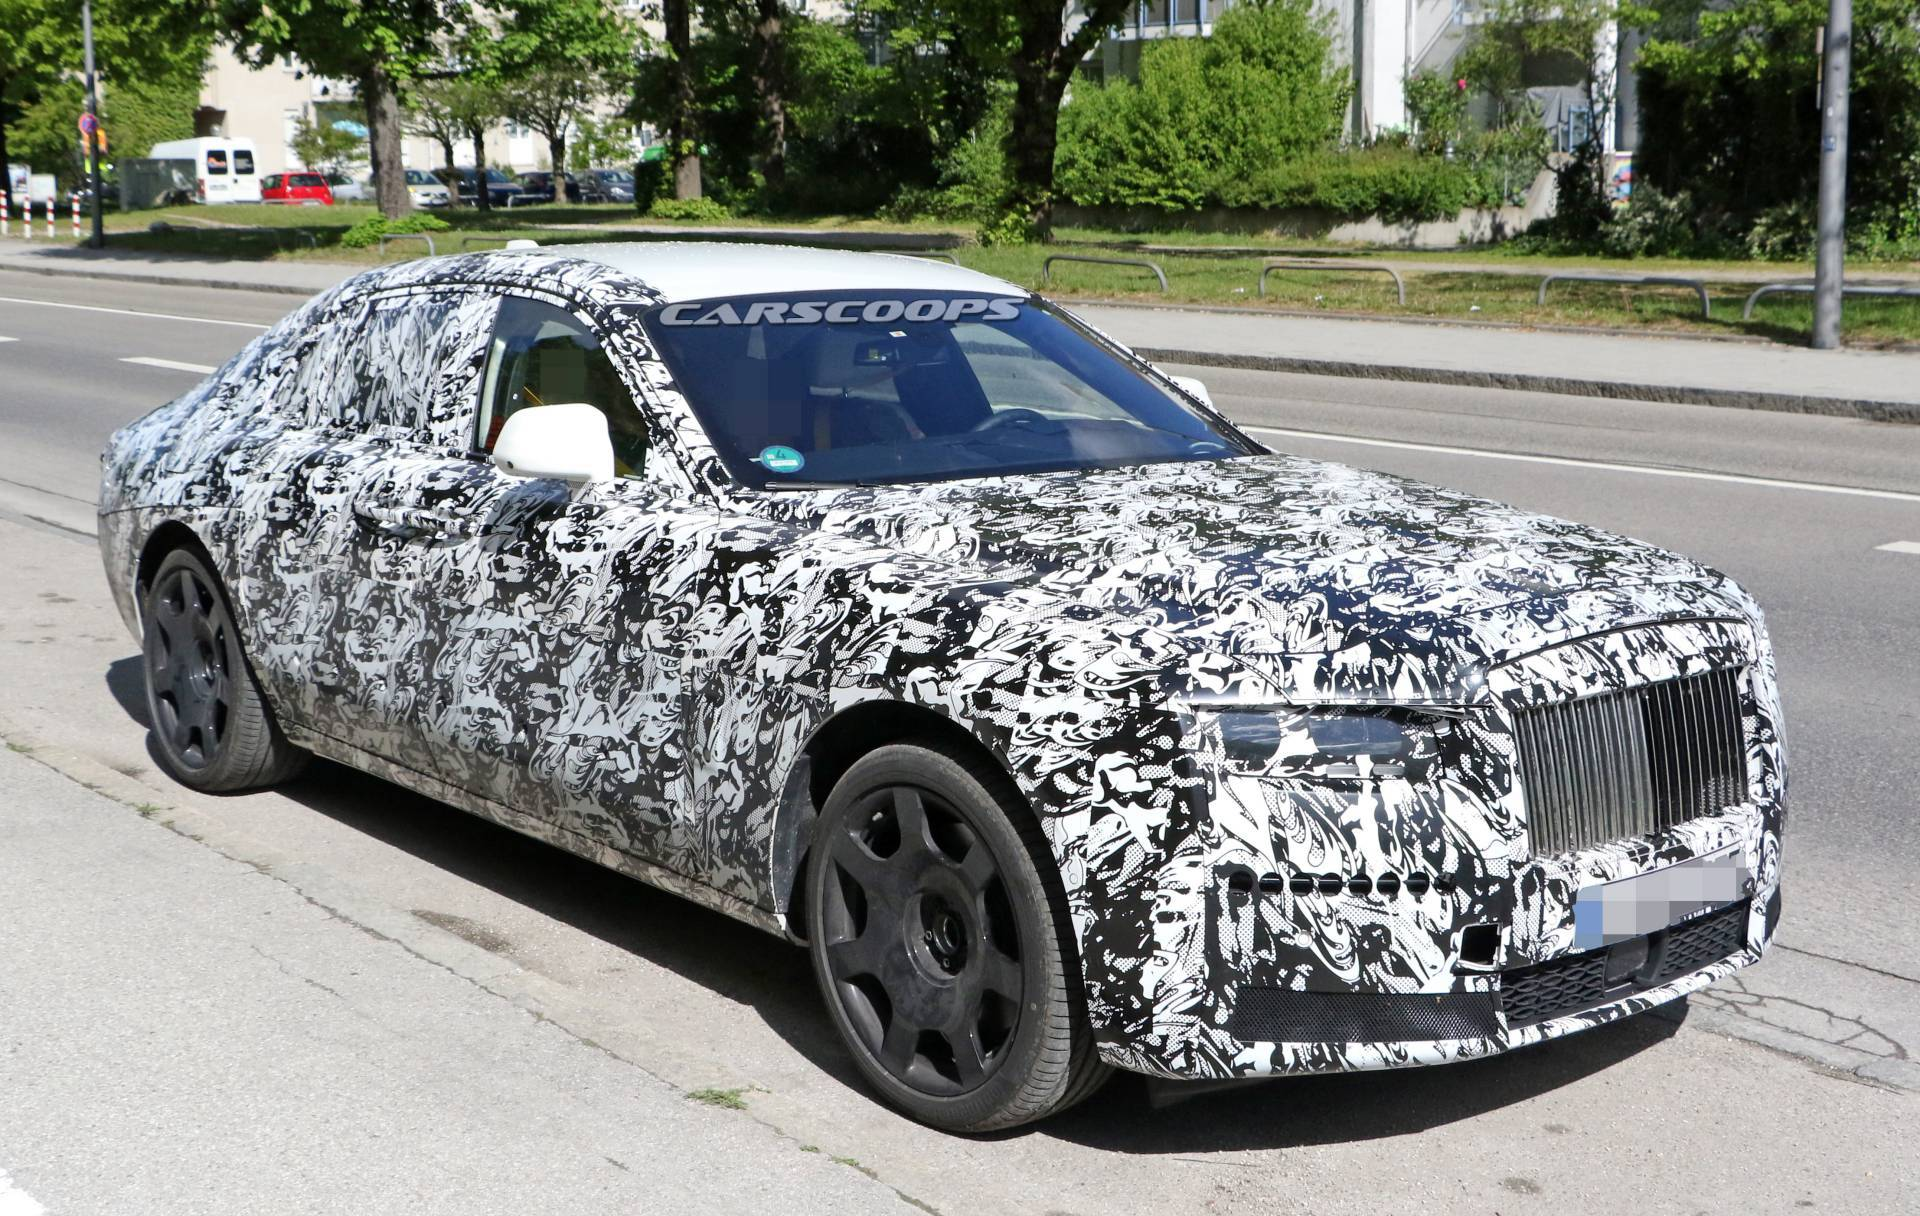 The new generation of the Rolls-Royce Ghost may be right around the corner, but the recently revealed spy shots make it abundantly clear that the update is mainly about the cabin trim, and not the exterior